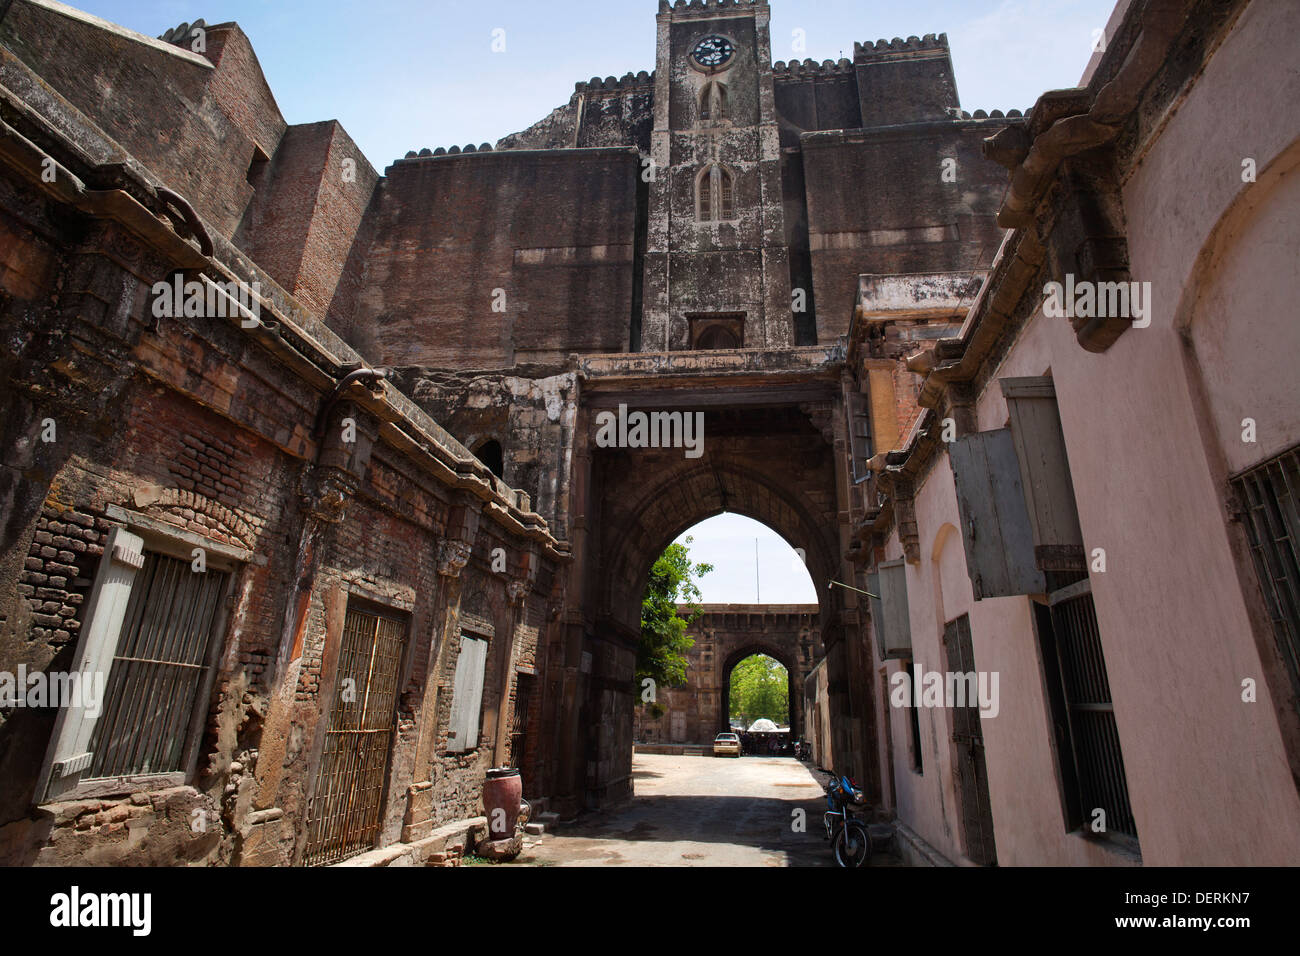 Archway at the fort, Bhadra Fort, Ahmedabad, Gujarat, India - Stock Image